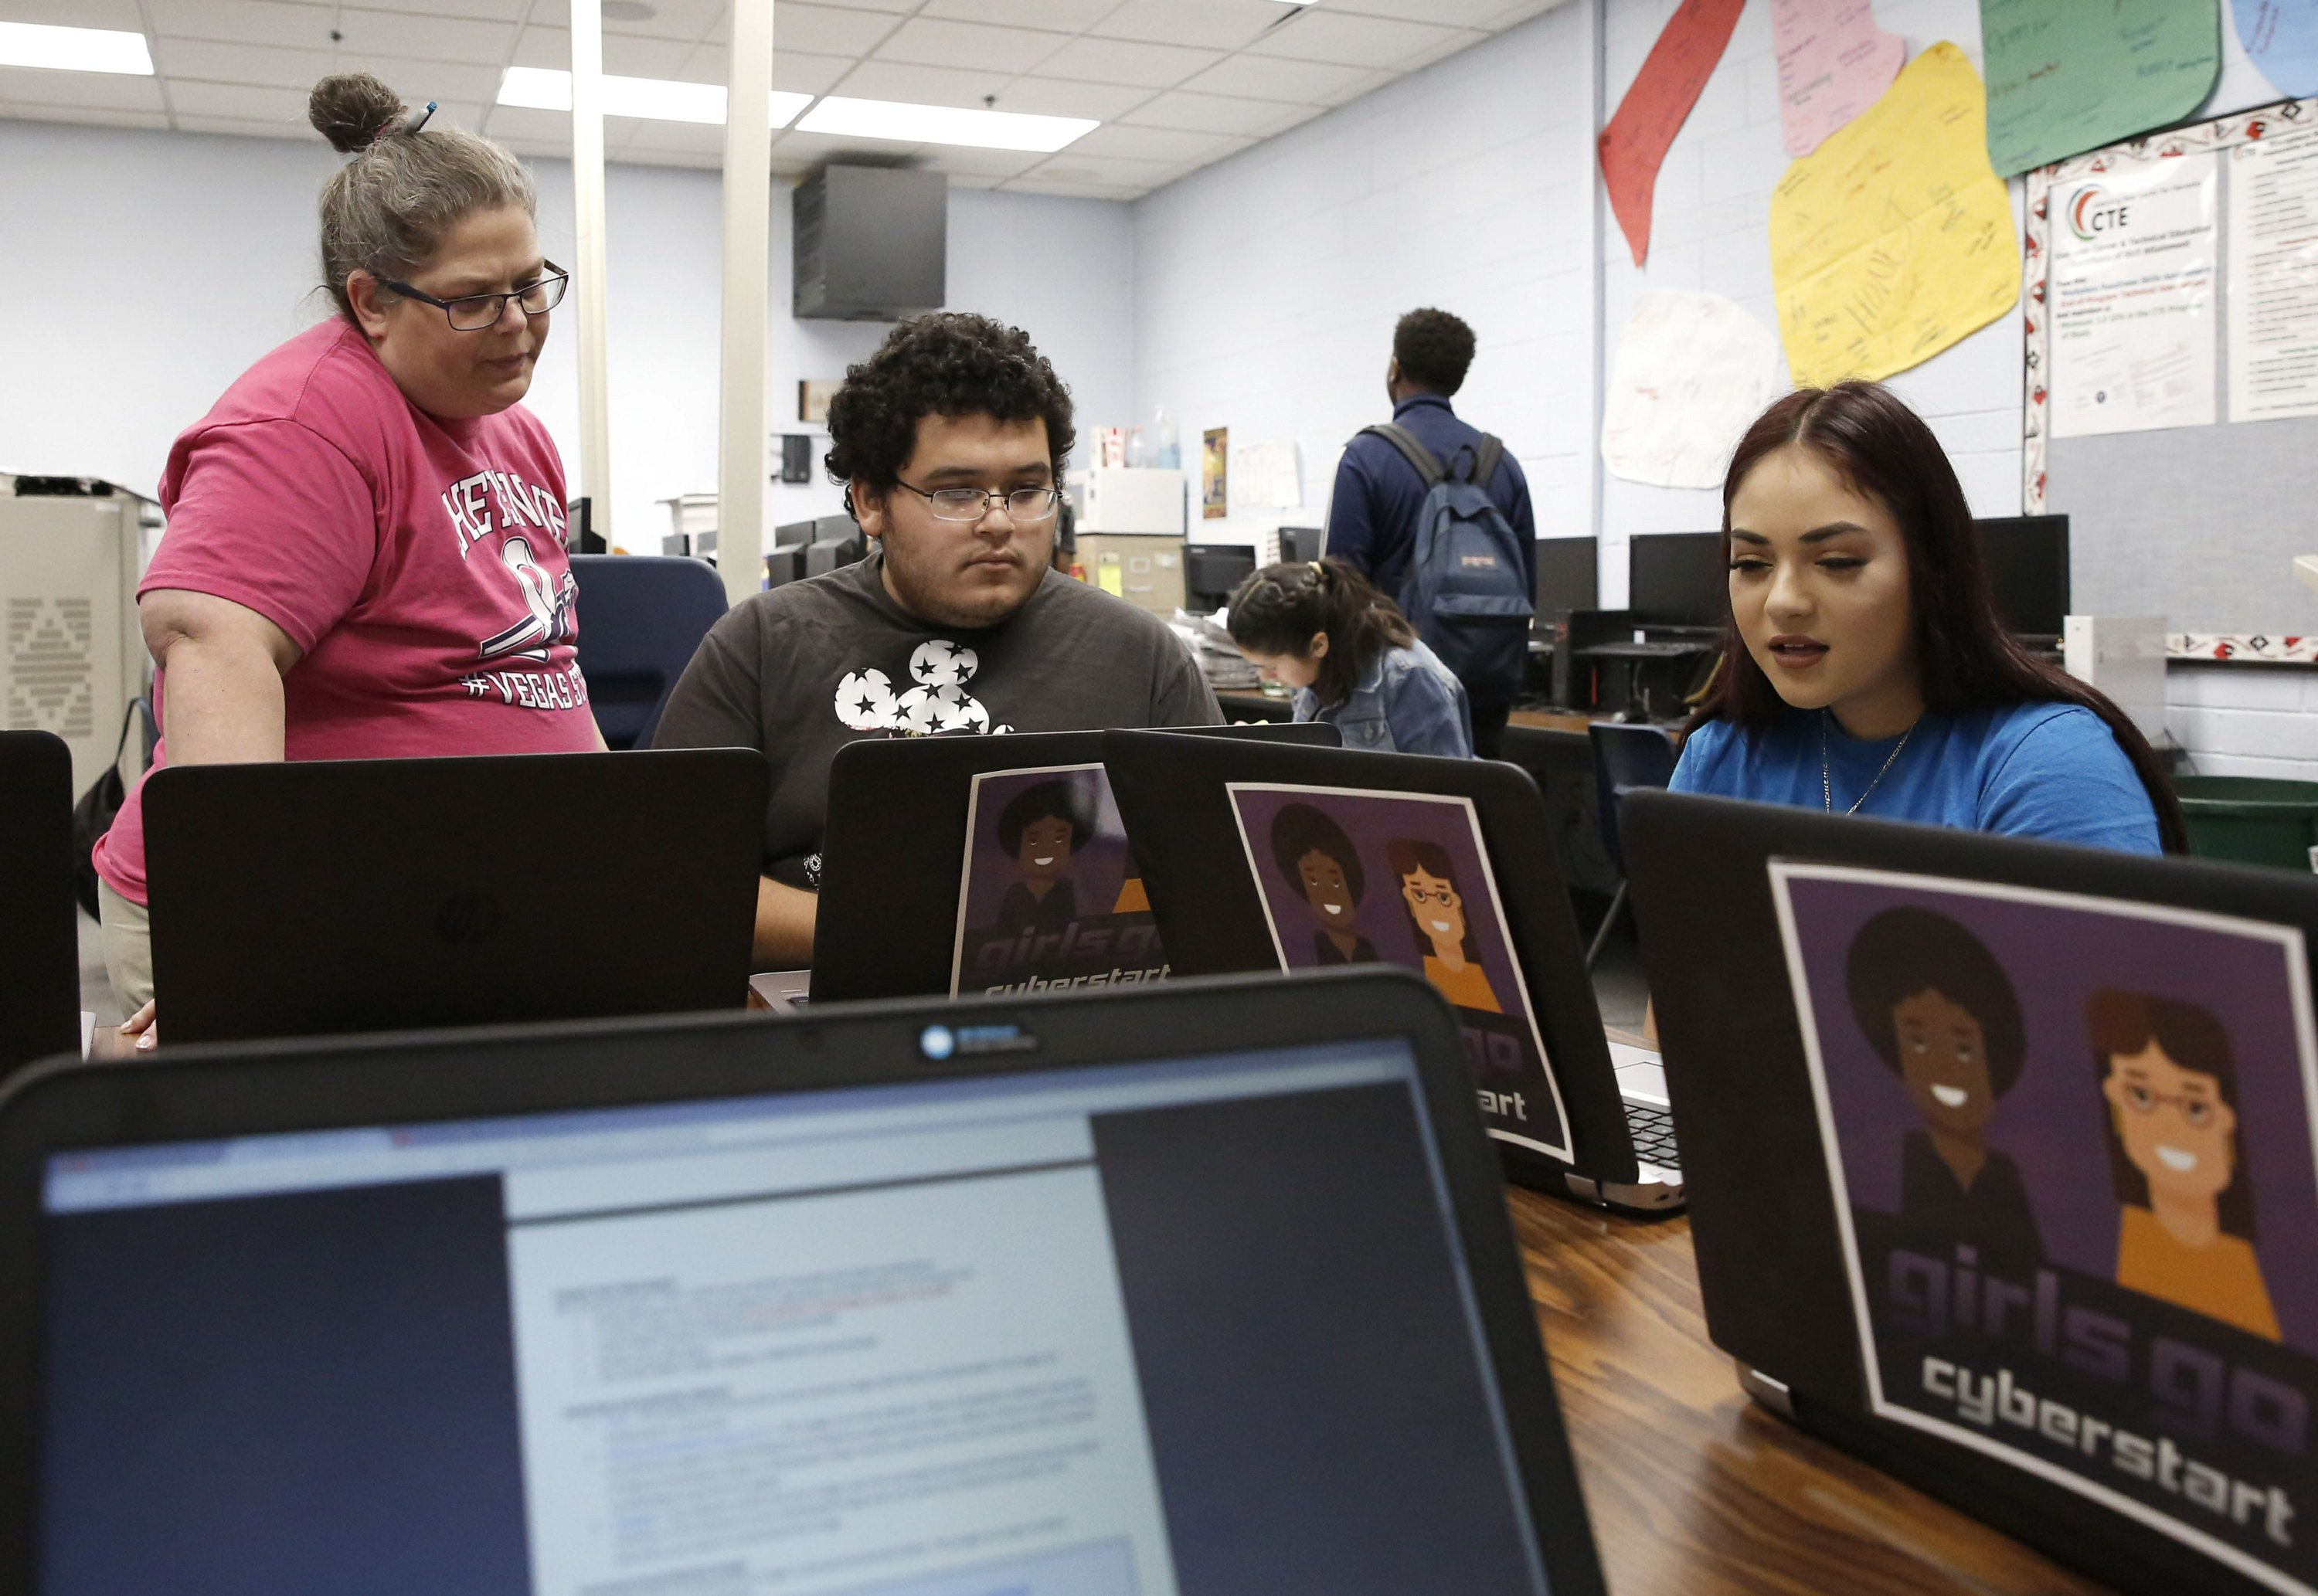 Cybersecurity education growing in Nevada as risks increase